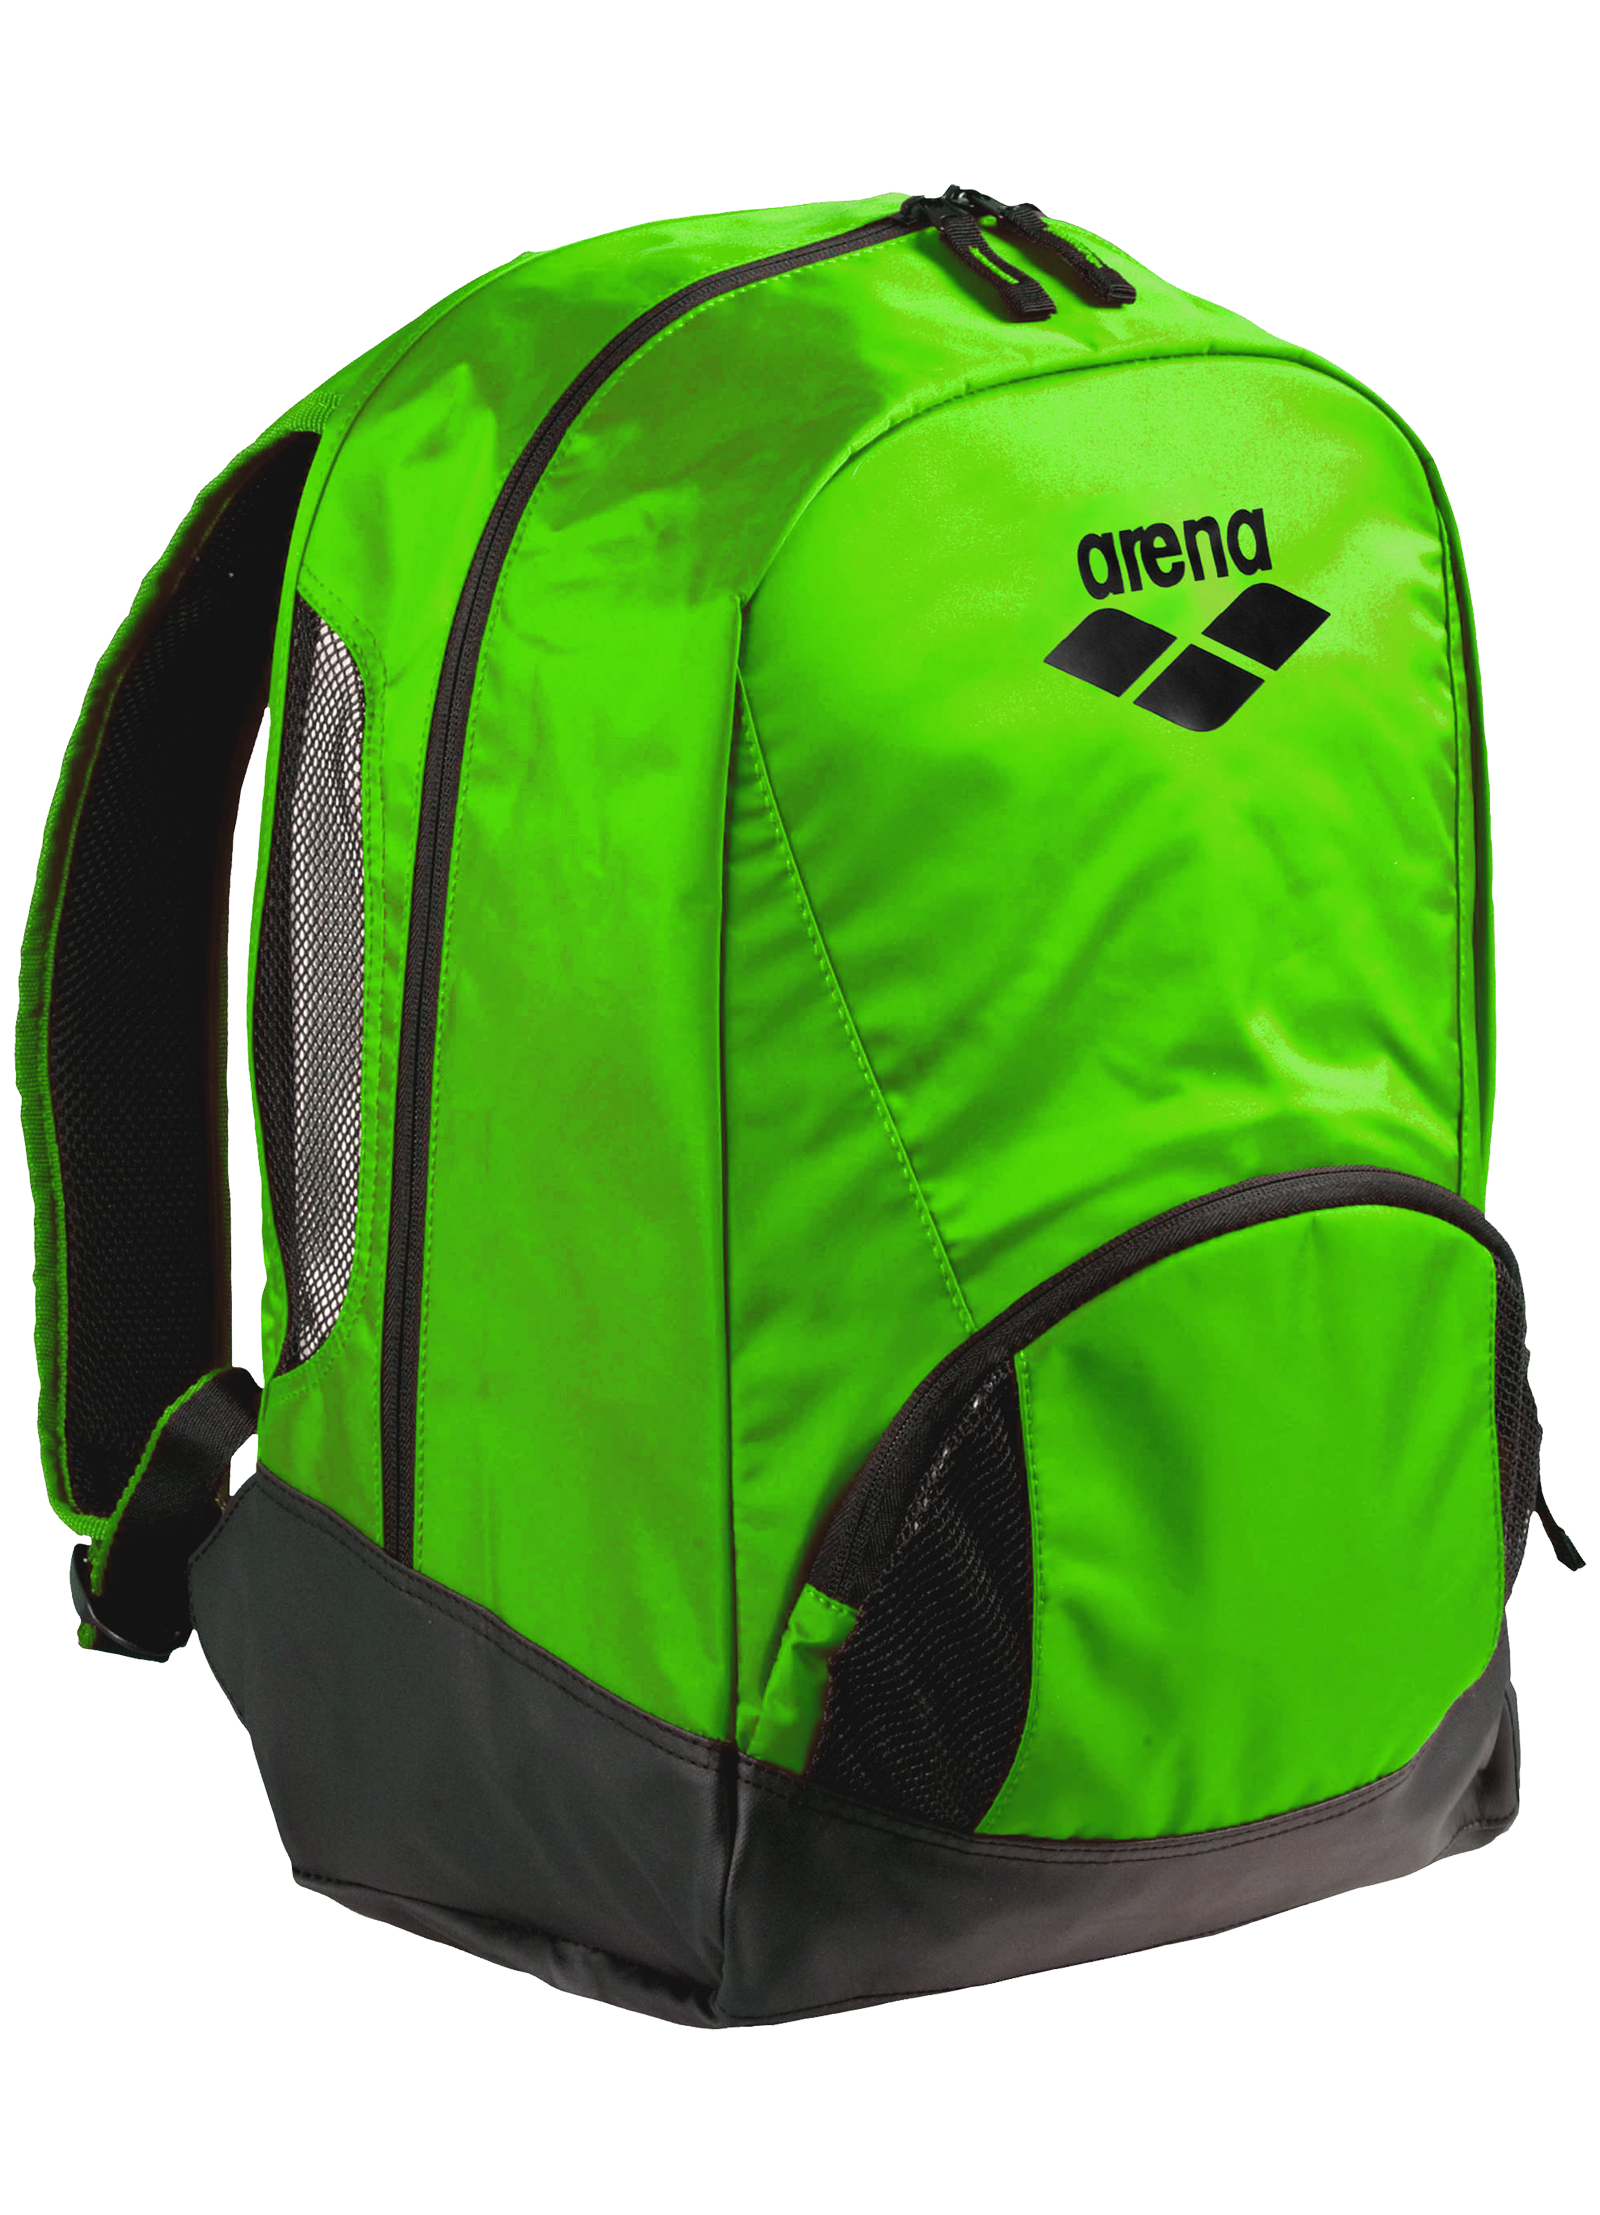 Arena Backpack Fortnite Pin On Clothing